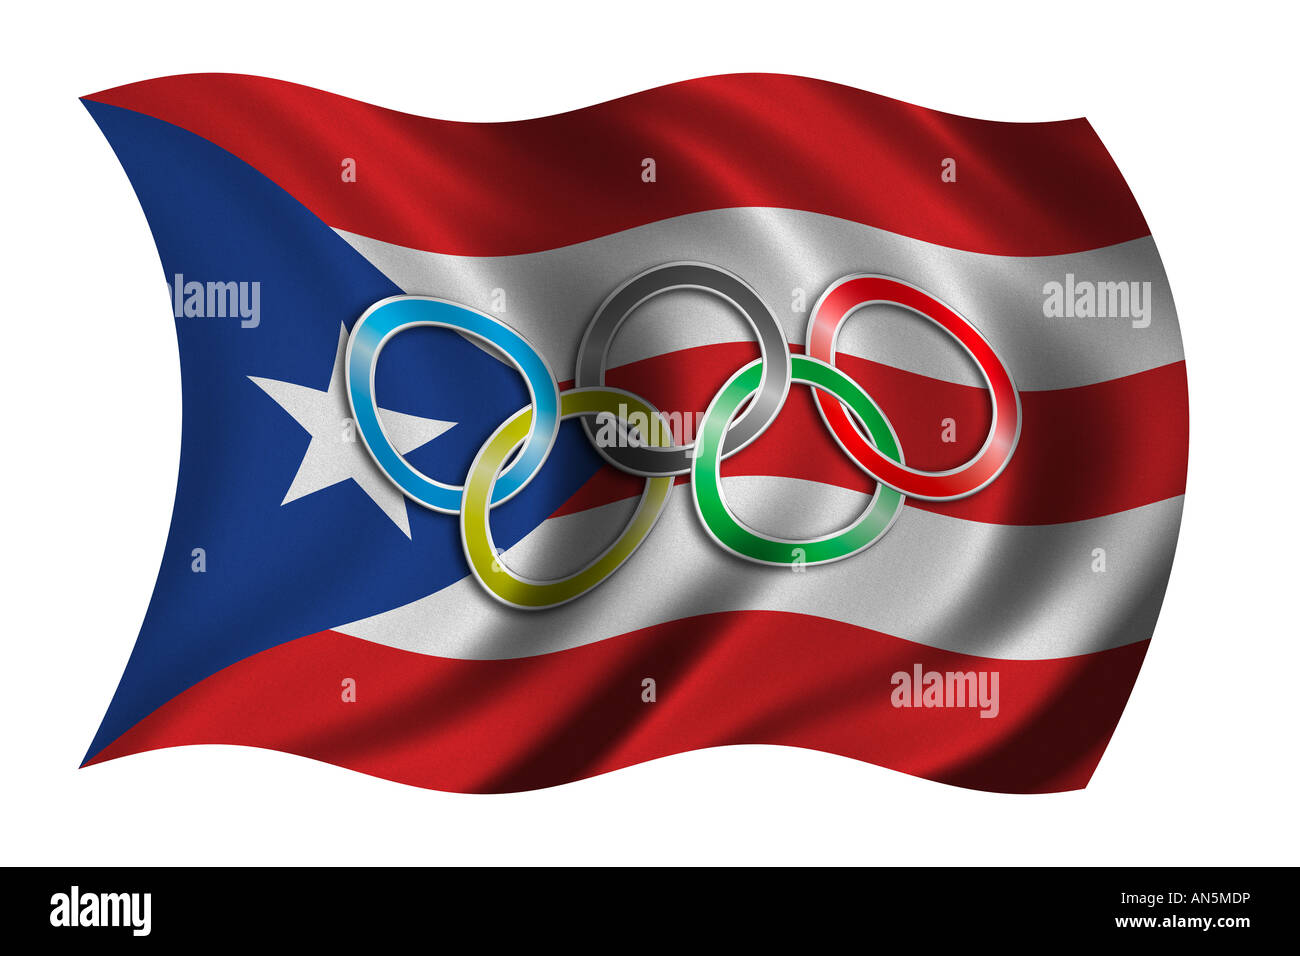 Flag of puerto rico with olympic symbol stock photo 15420321 alamy flag of puerto rico with olympic symbol biocorpaavc Choice Image